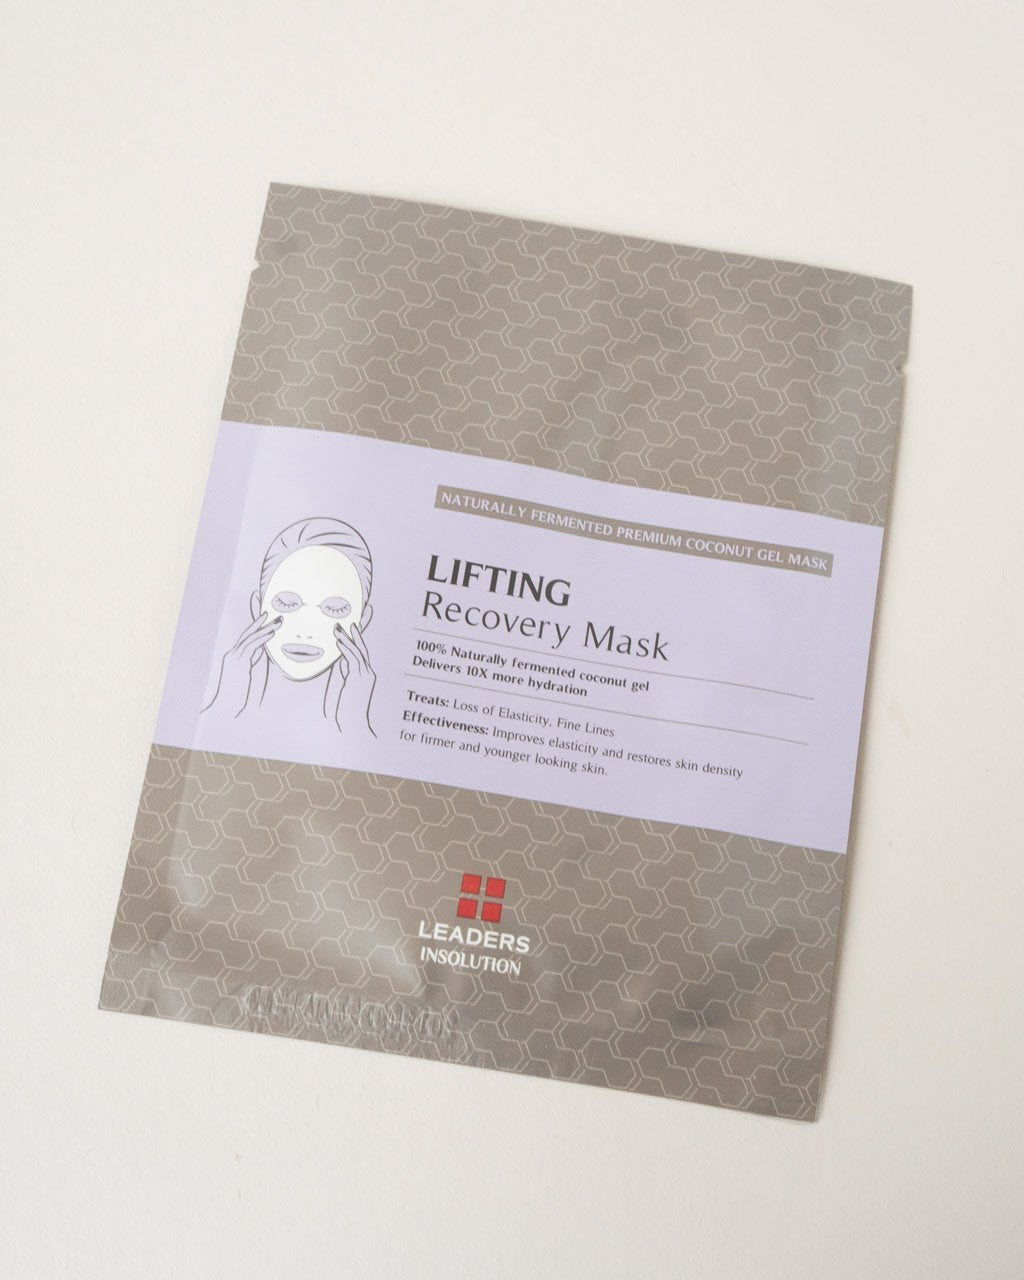 Lifting Recovery Mask Product